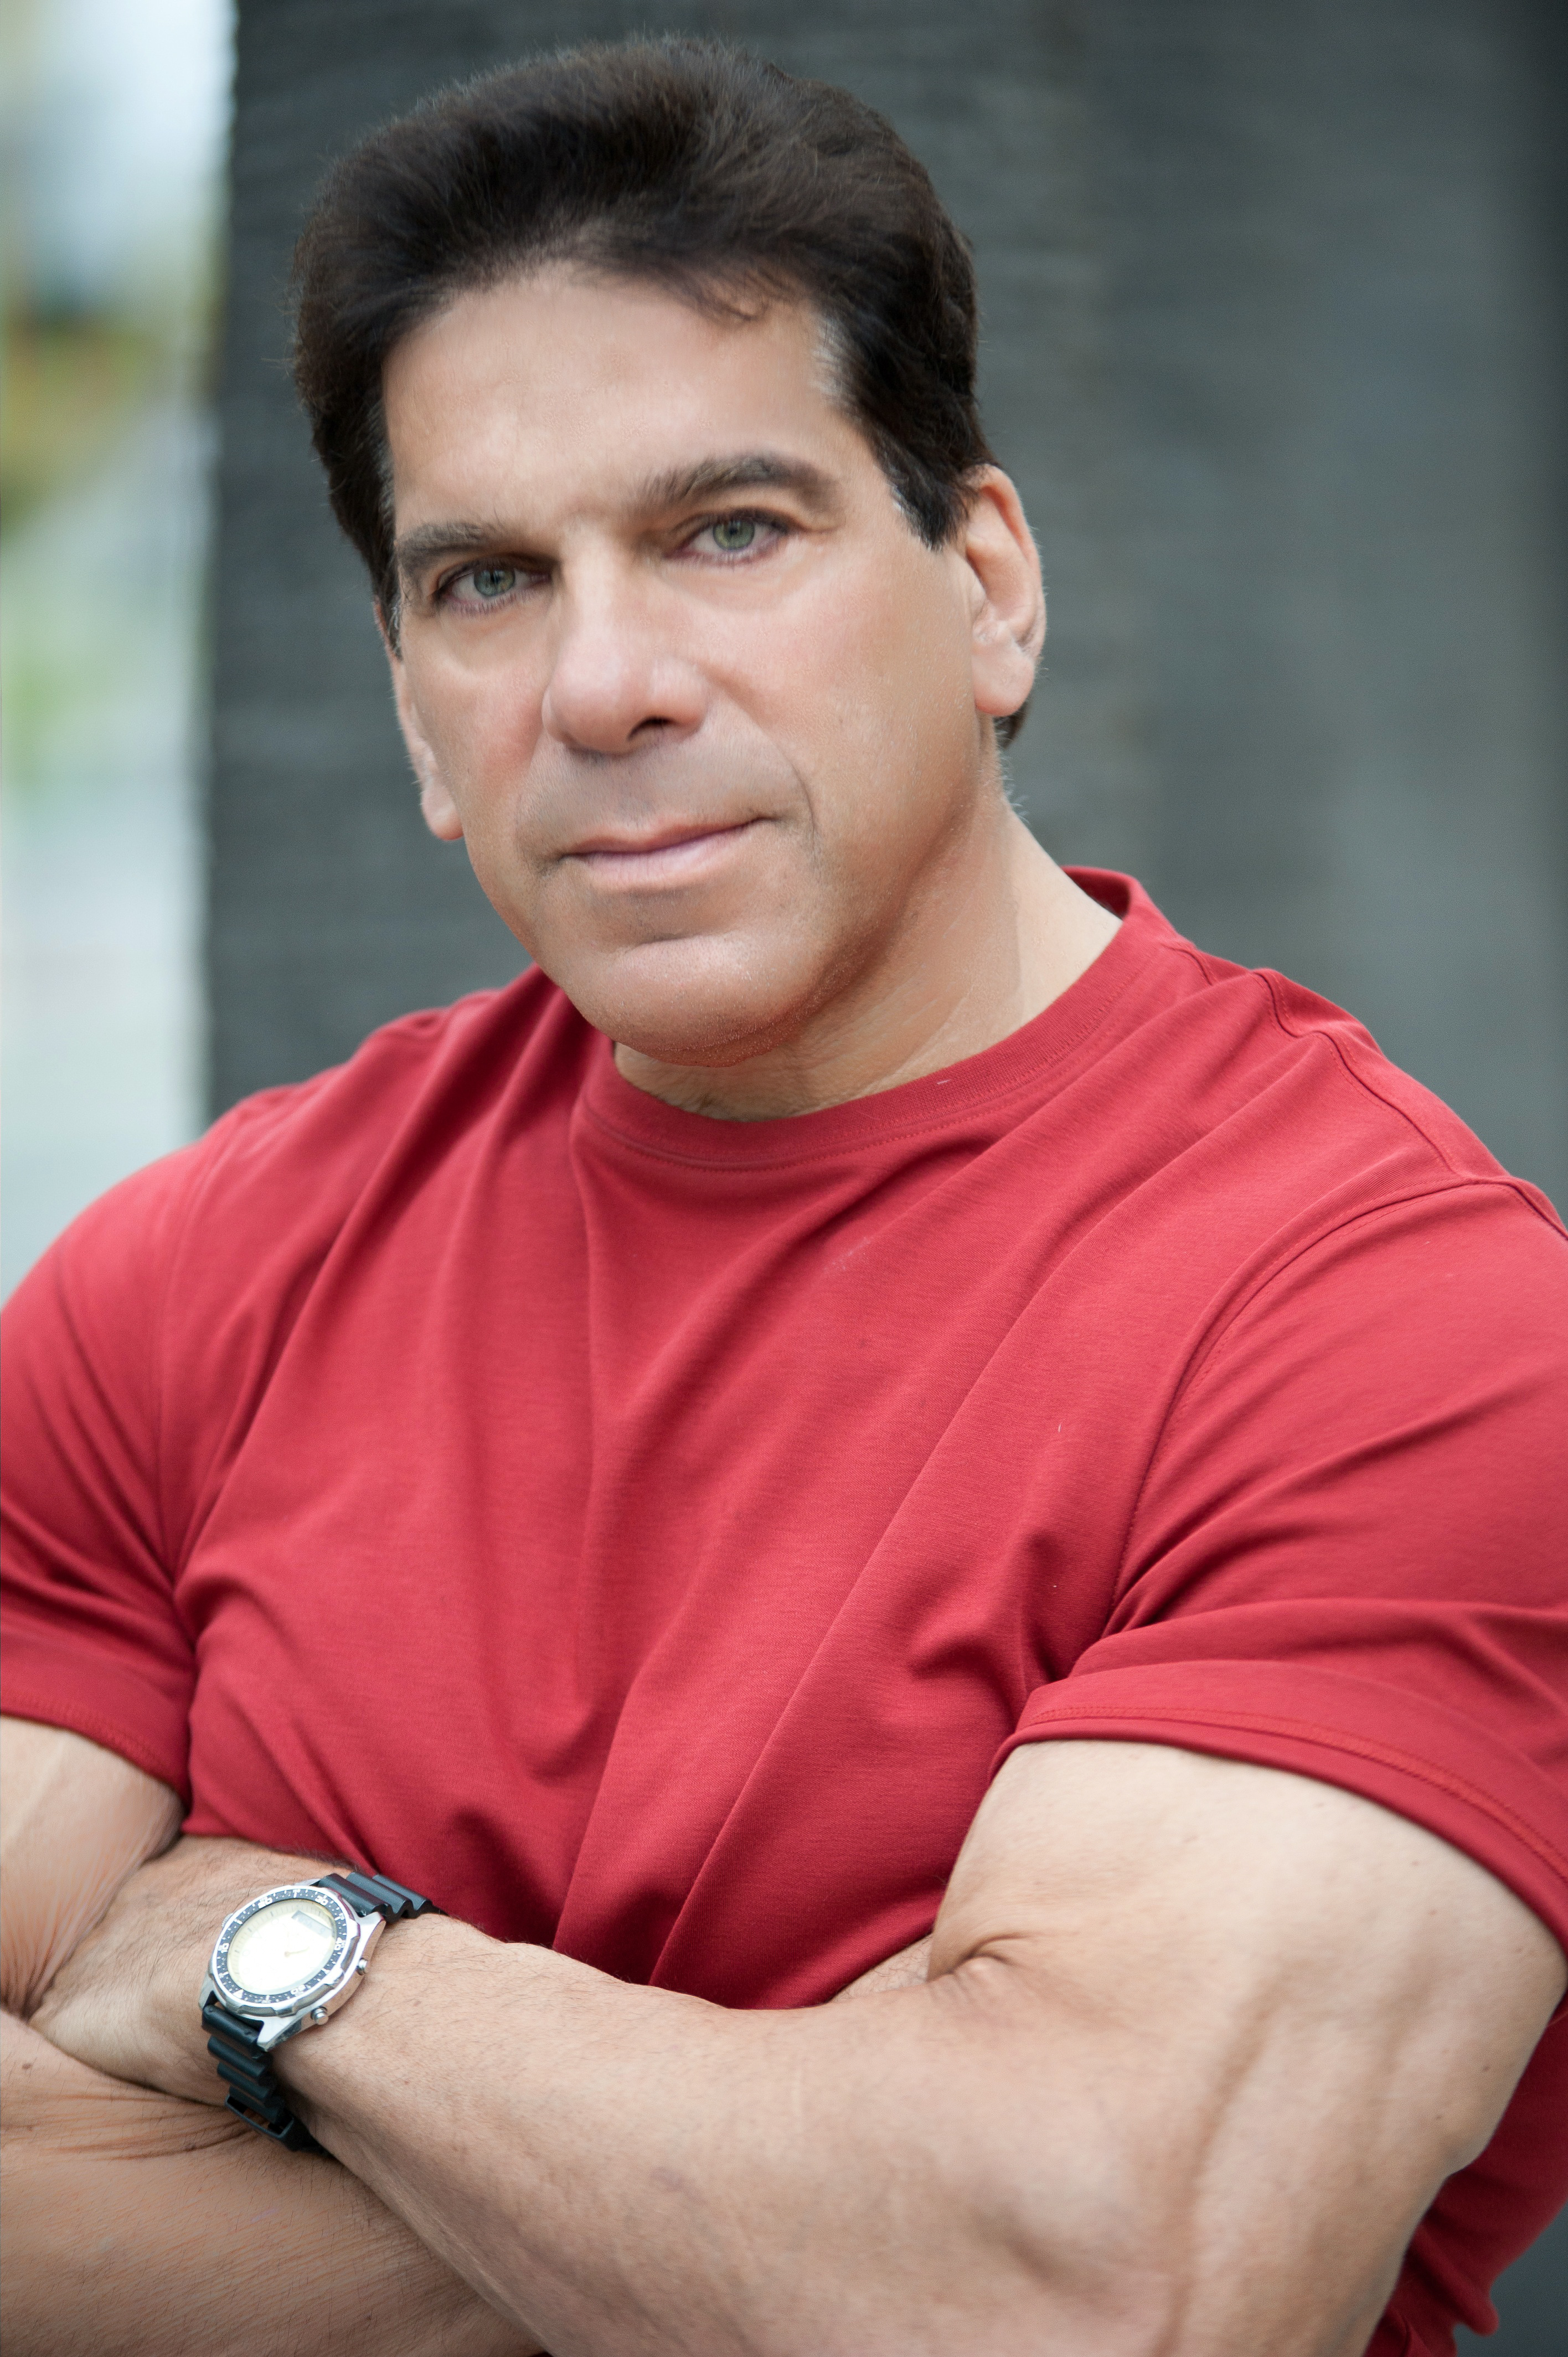 Adam_Sternberg_Photography_headshot_17